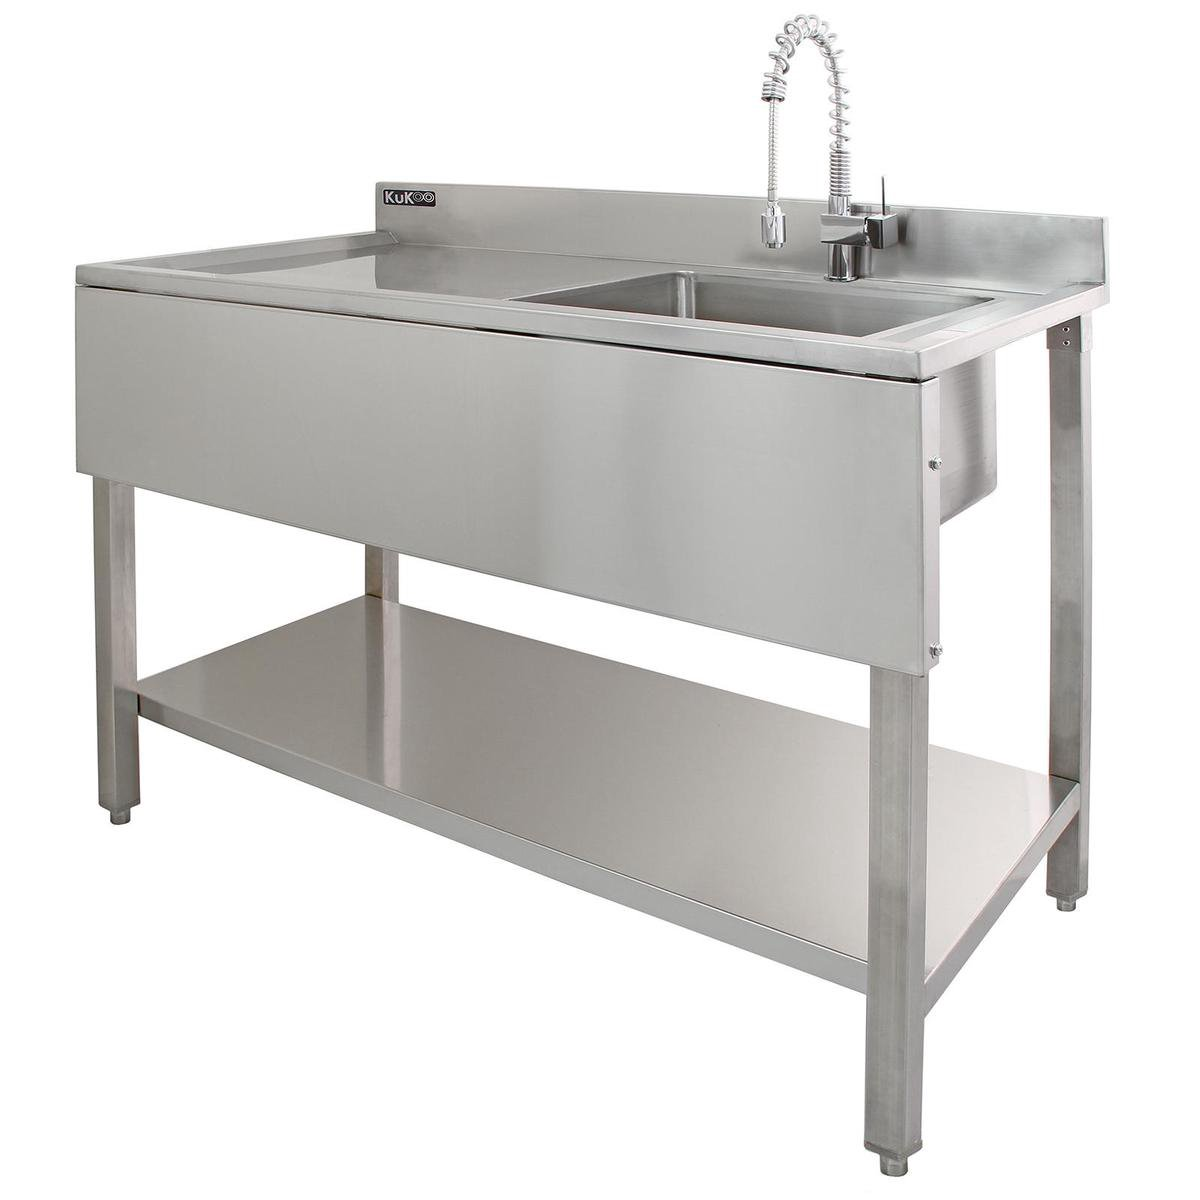 Kukoo Commercial Stainless Steel Sink